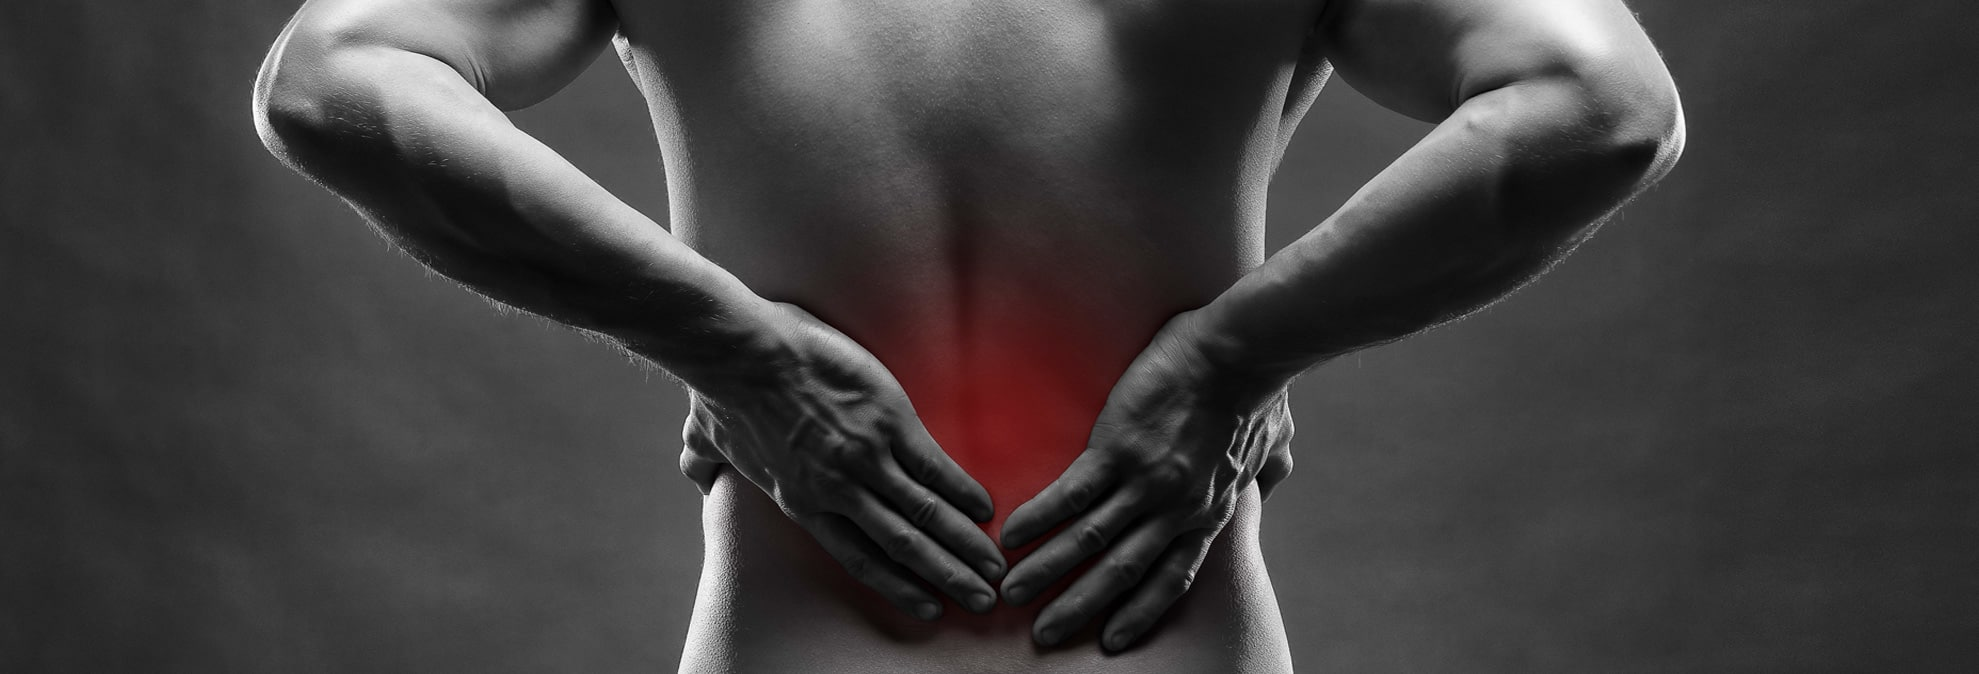 5 Causes Of Back Pain Consumer Reports